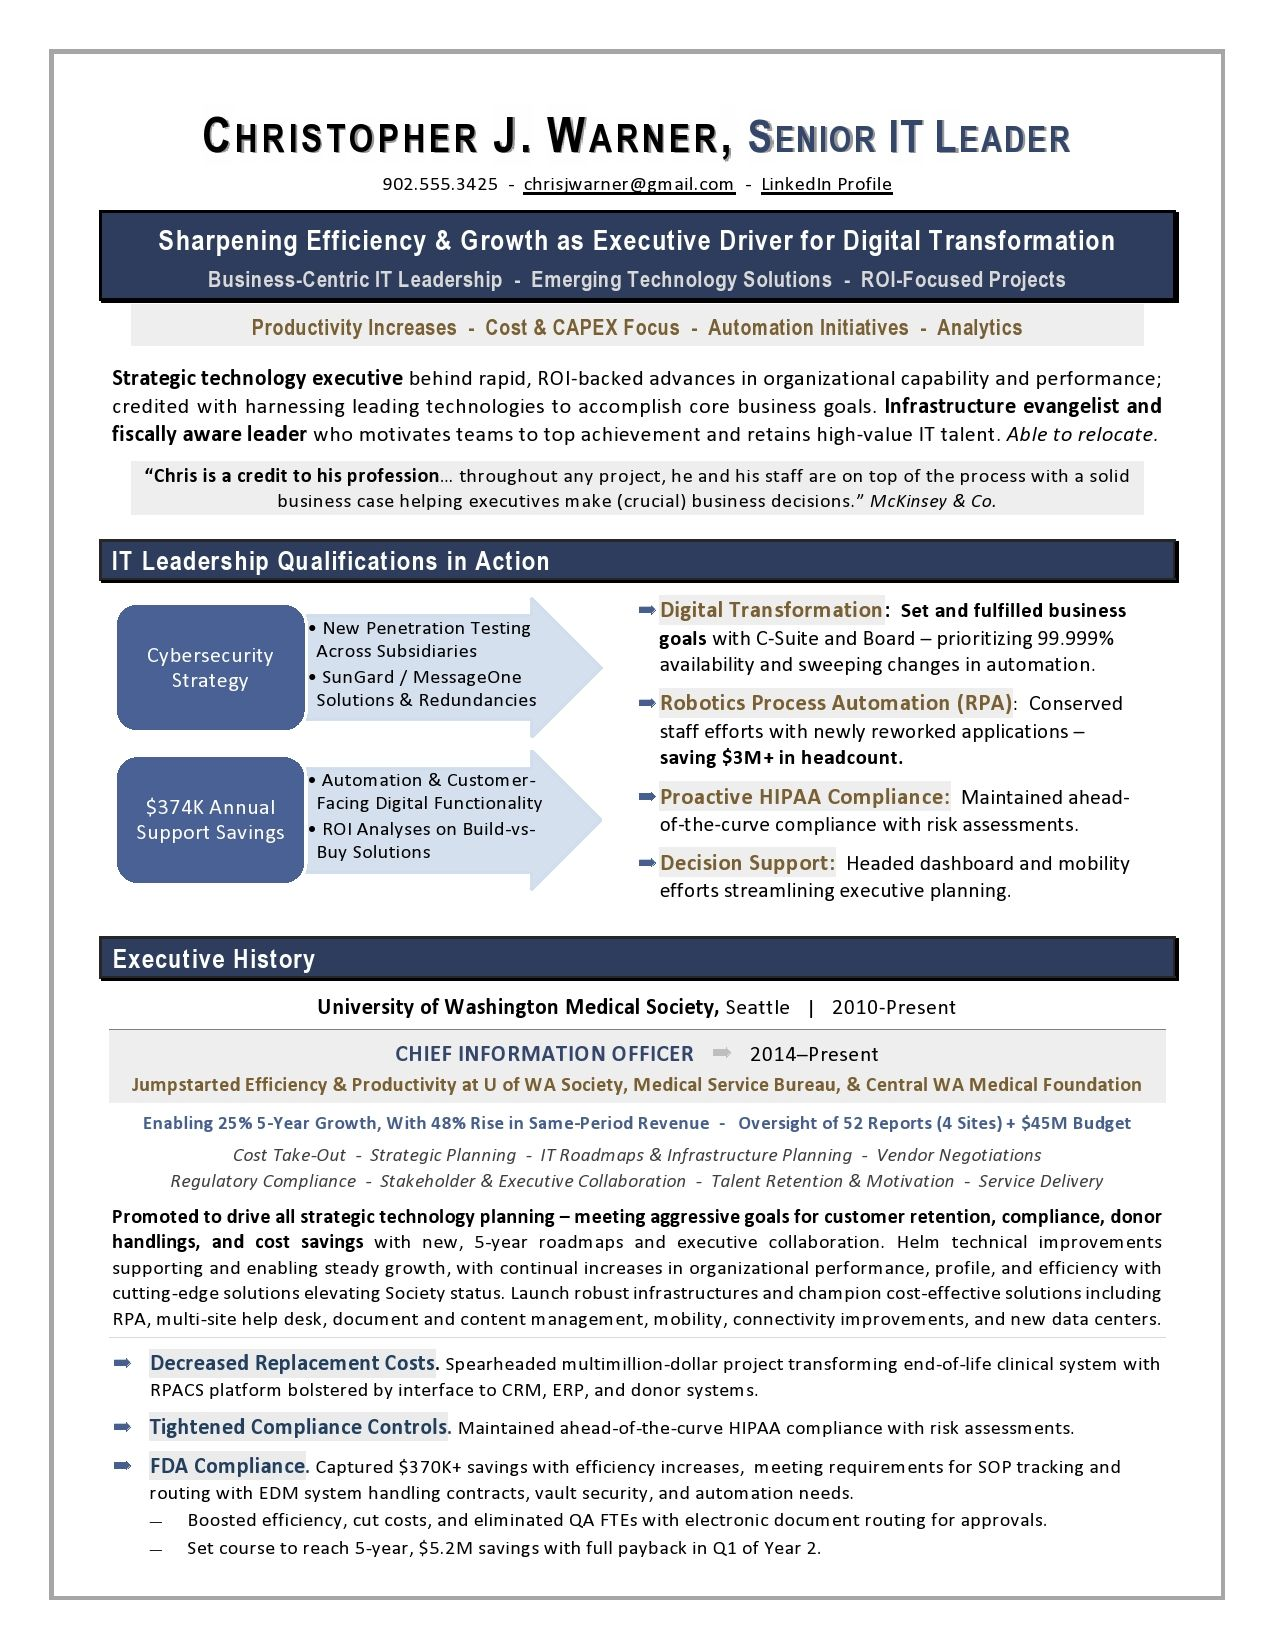 View Best Executive Resume Examples Gif In 2021 Executive Resume Cover Letter For Resume Resume Examples